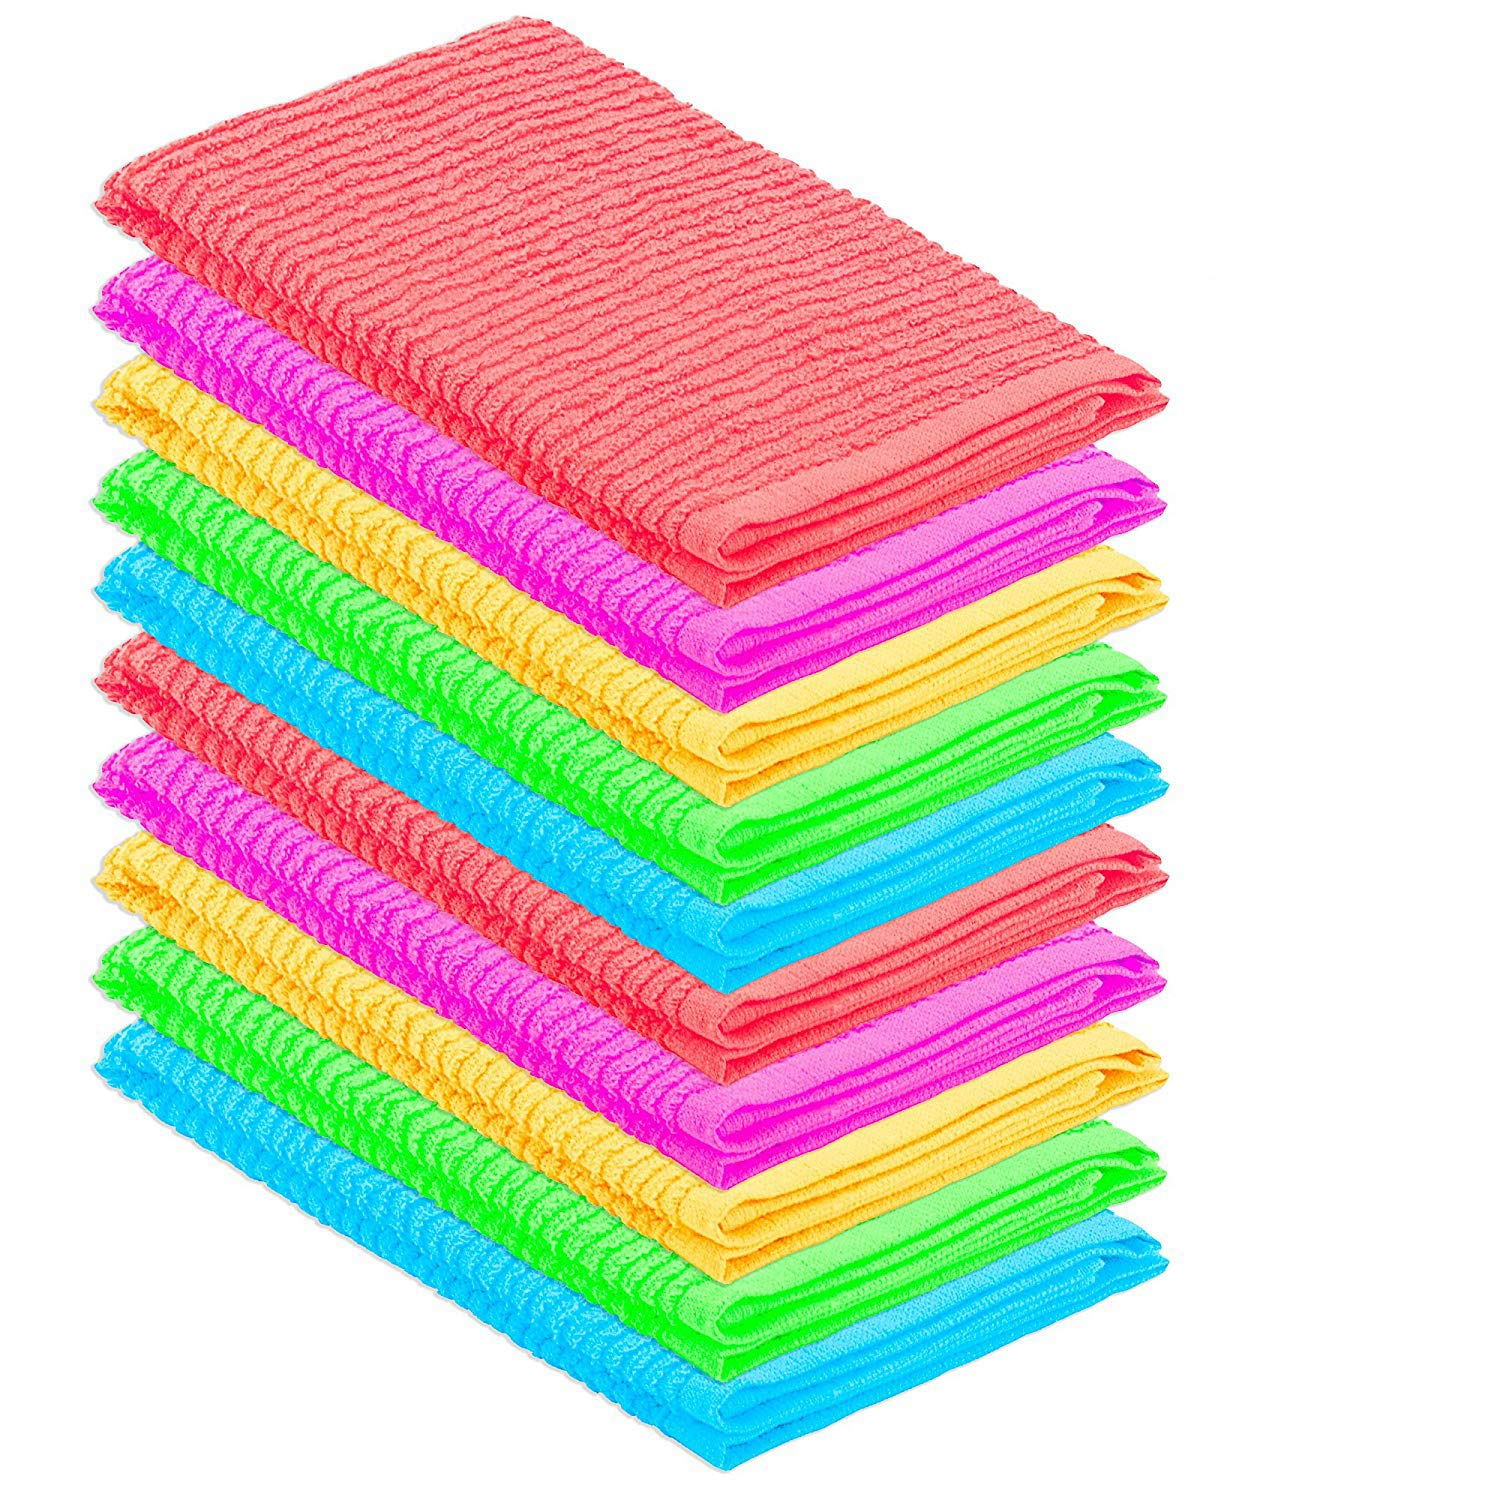 DecorRack 10 Pack 100/% Cotton Bar Mop Heavy Duty Kitchen Cleaning Towels Ultra Absorbent 10 Pack Spring Colors 16 x 19 inch